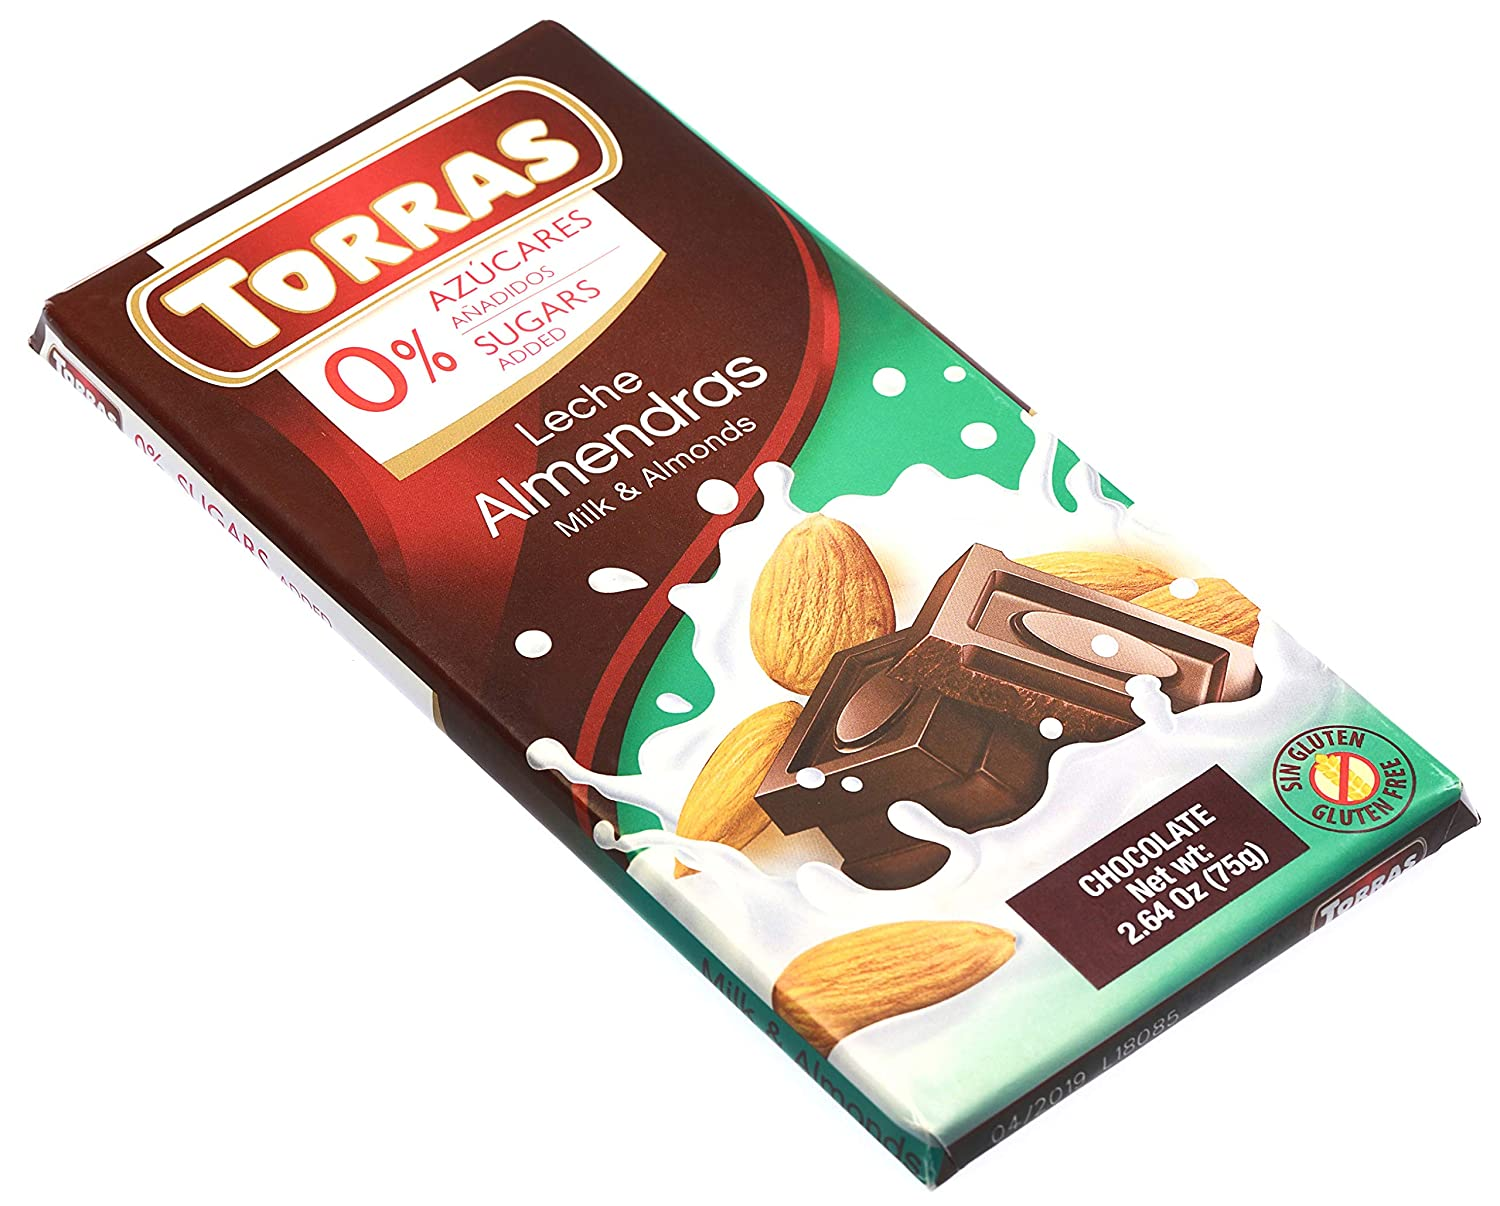 Amazon.com : Torras Sugar Free and Gluten Free Dark Chocolate Bar - Milk and Almonds (4 Pack) : Grocery & Gourmet Food